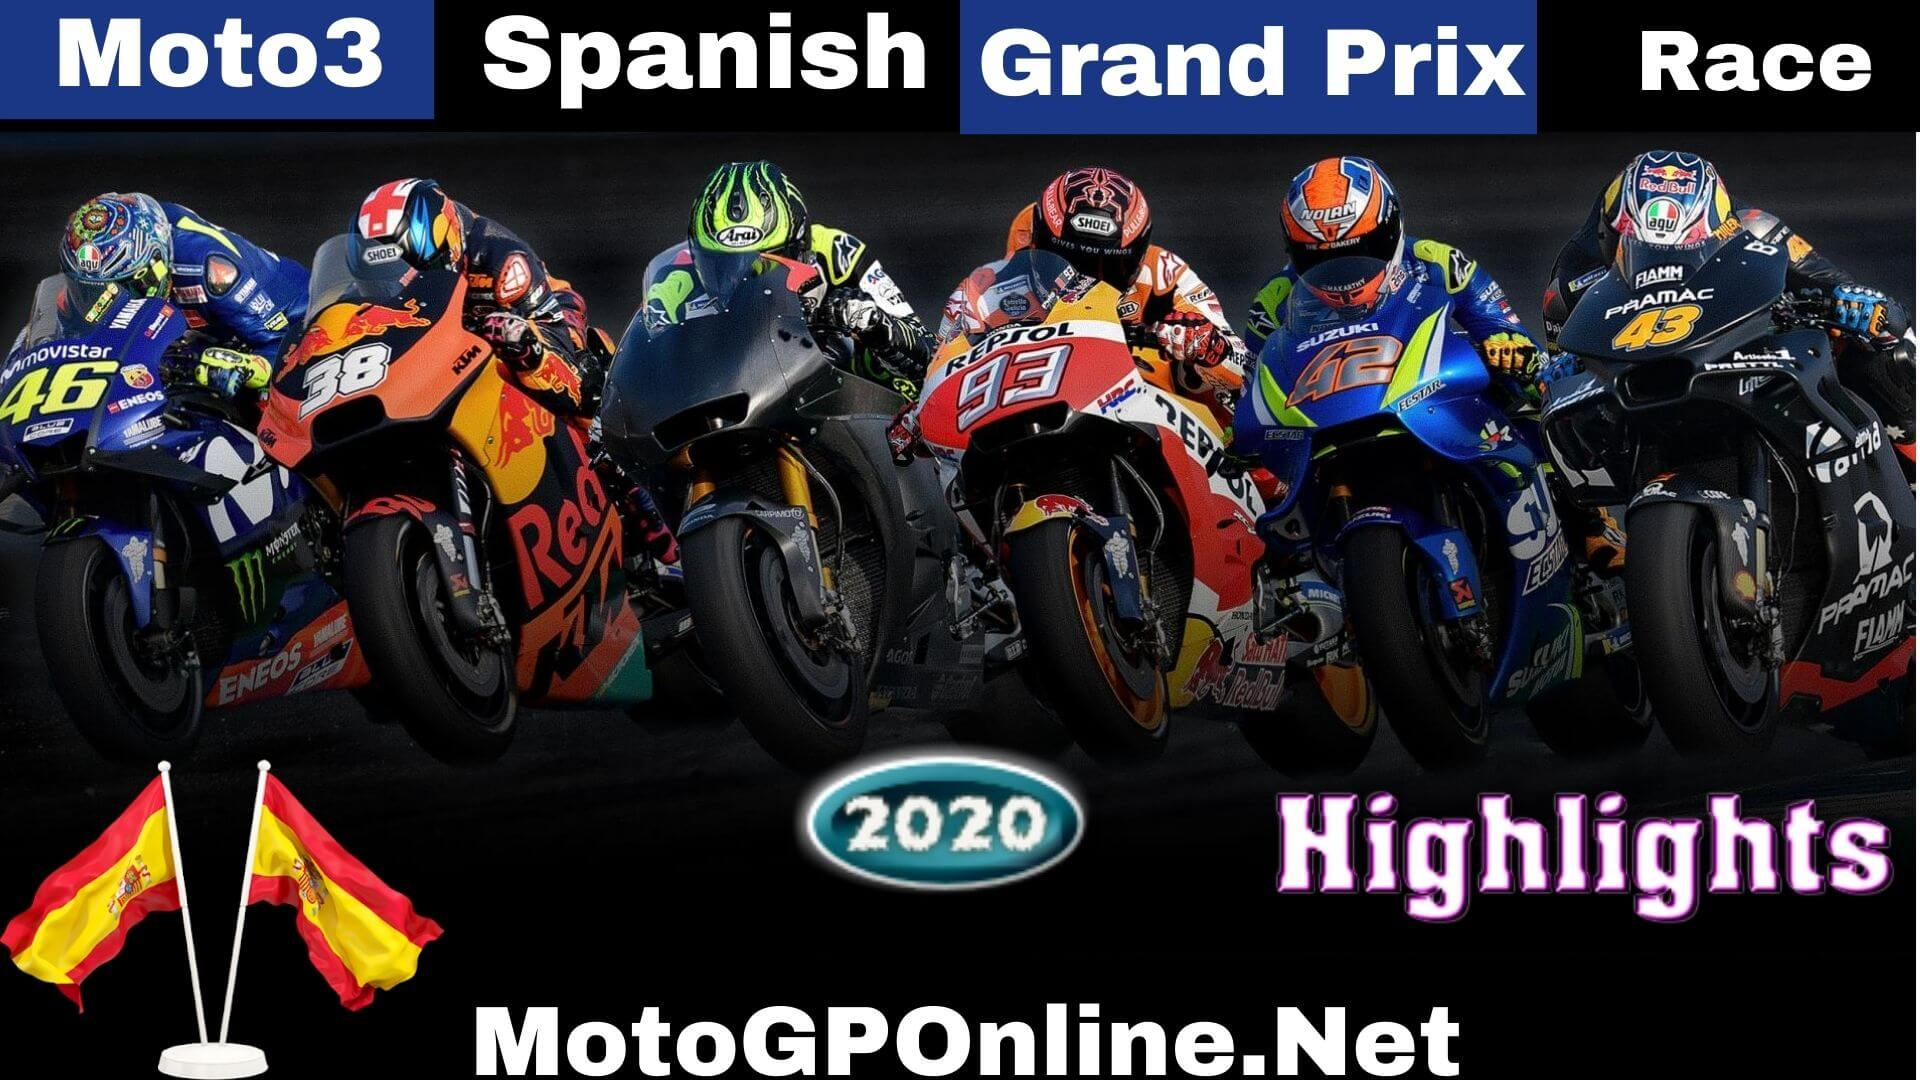 Moto3 Spanish Grand Prix Highlights 2020 Race